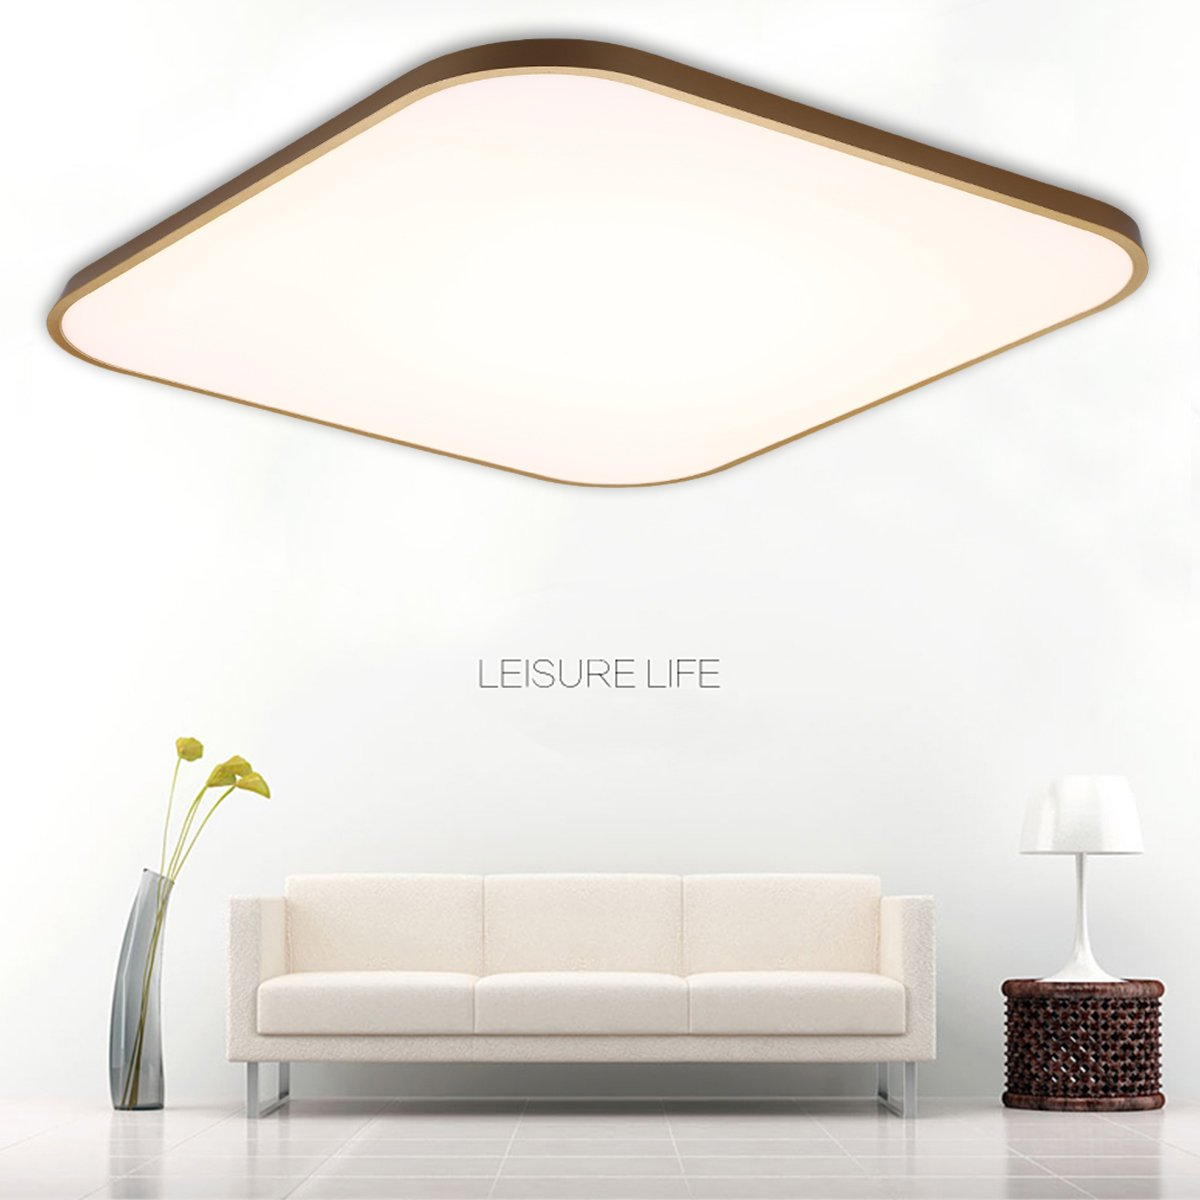 FLOUREON 24 ~ 29.5 Inch Ultra-thin Flush Mount LED Ceiling Light Modern Home Ceiling Light Fixture Flush Mount Chandeliers Lighting with 2.4G Wireless Remote Control Infinite Dimming (24W, Golden)